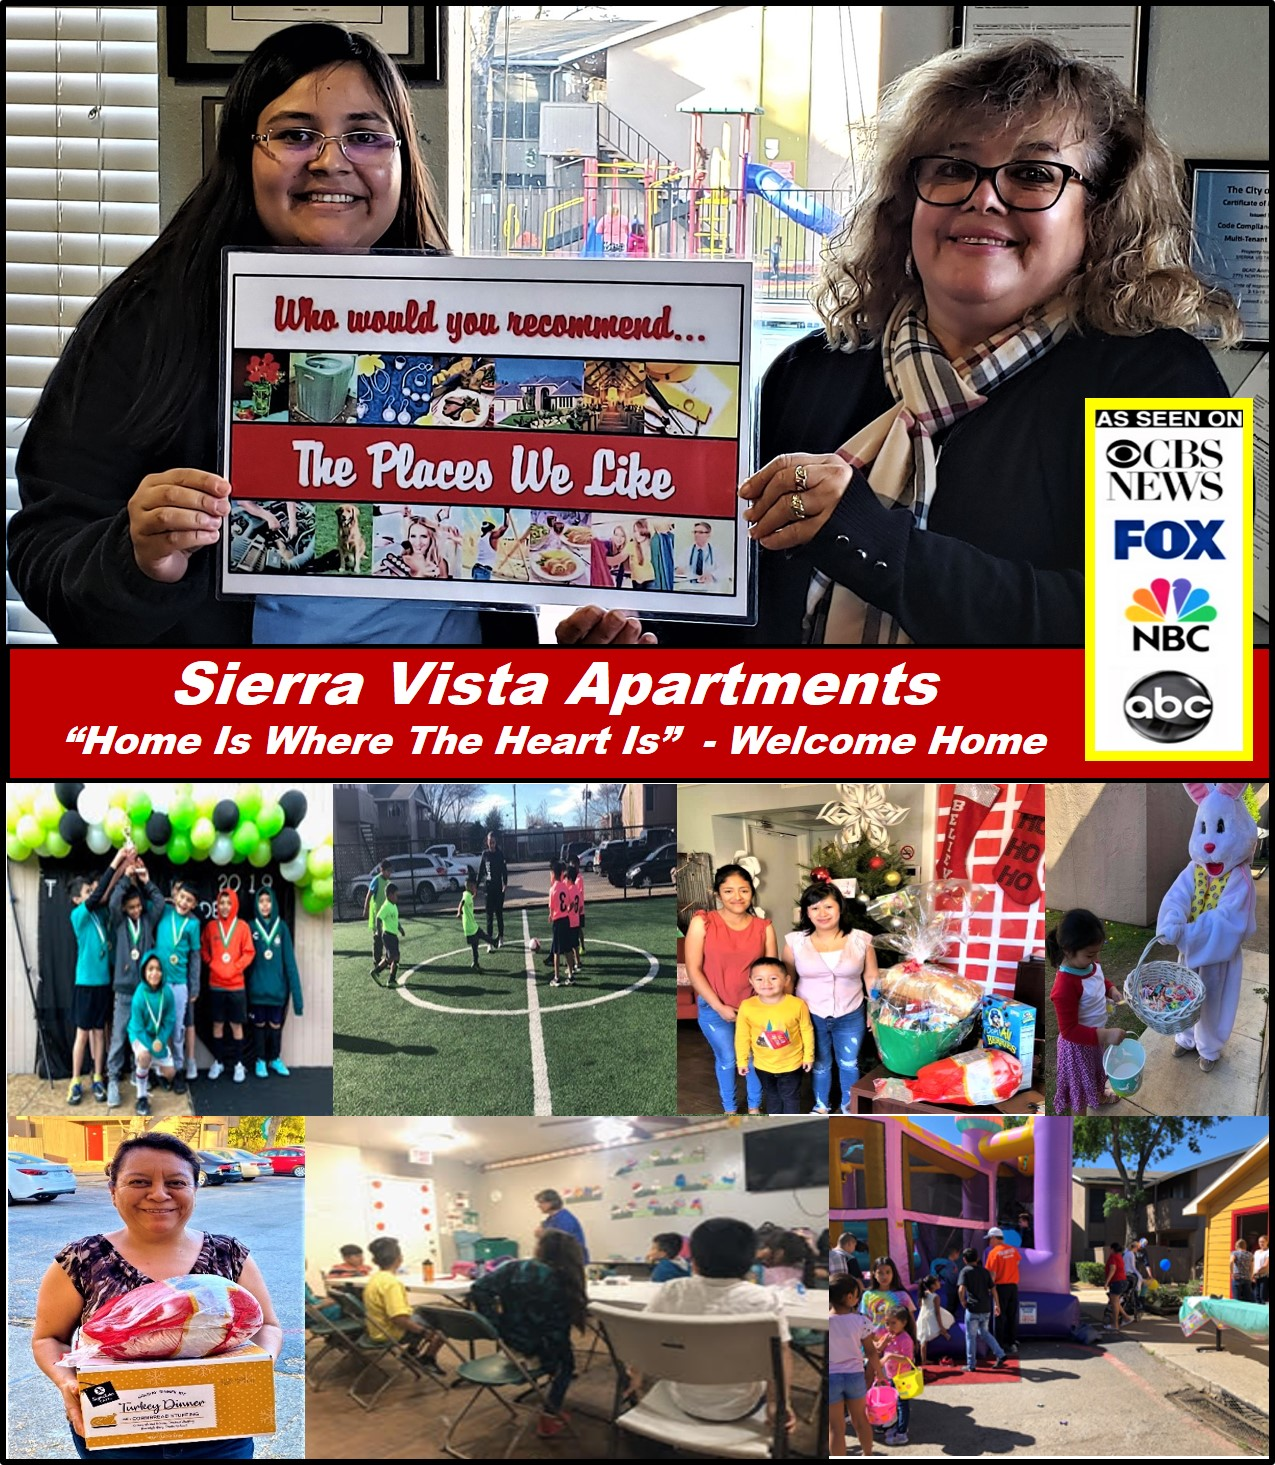 """Sierra Vista Apartments In Dallas Texas Was Just Recognized By """"The Places We Like In Dallas"""" As A Premier Living Community Whose #1 Priority Is The Family 1"""